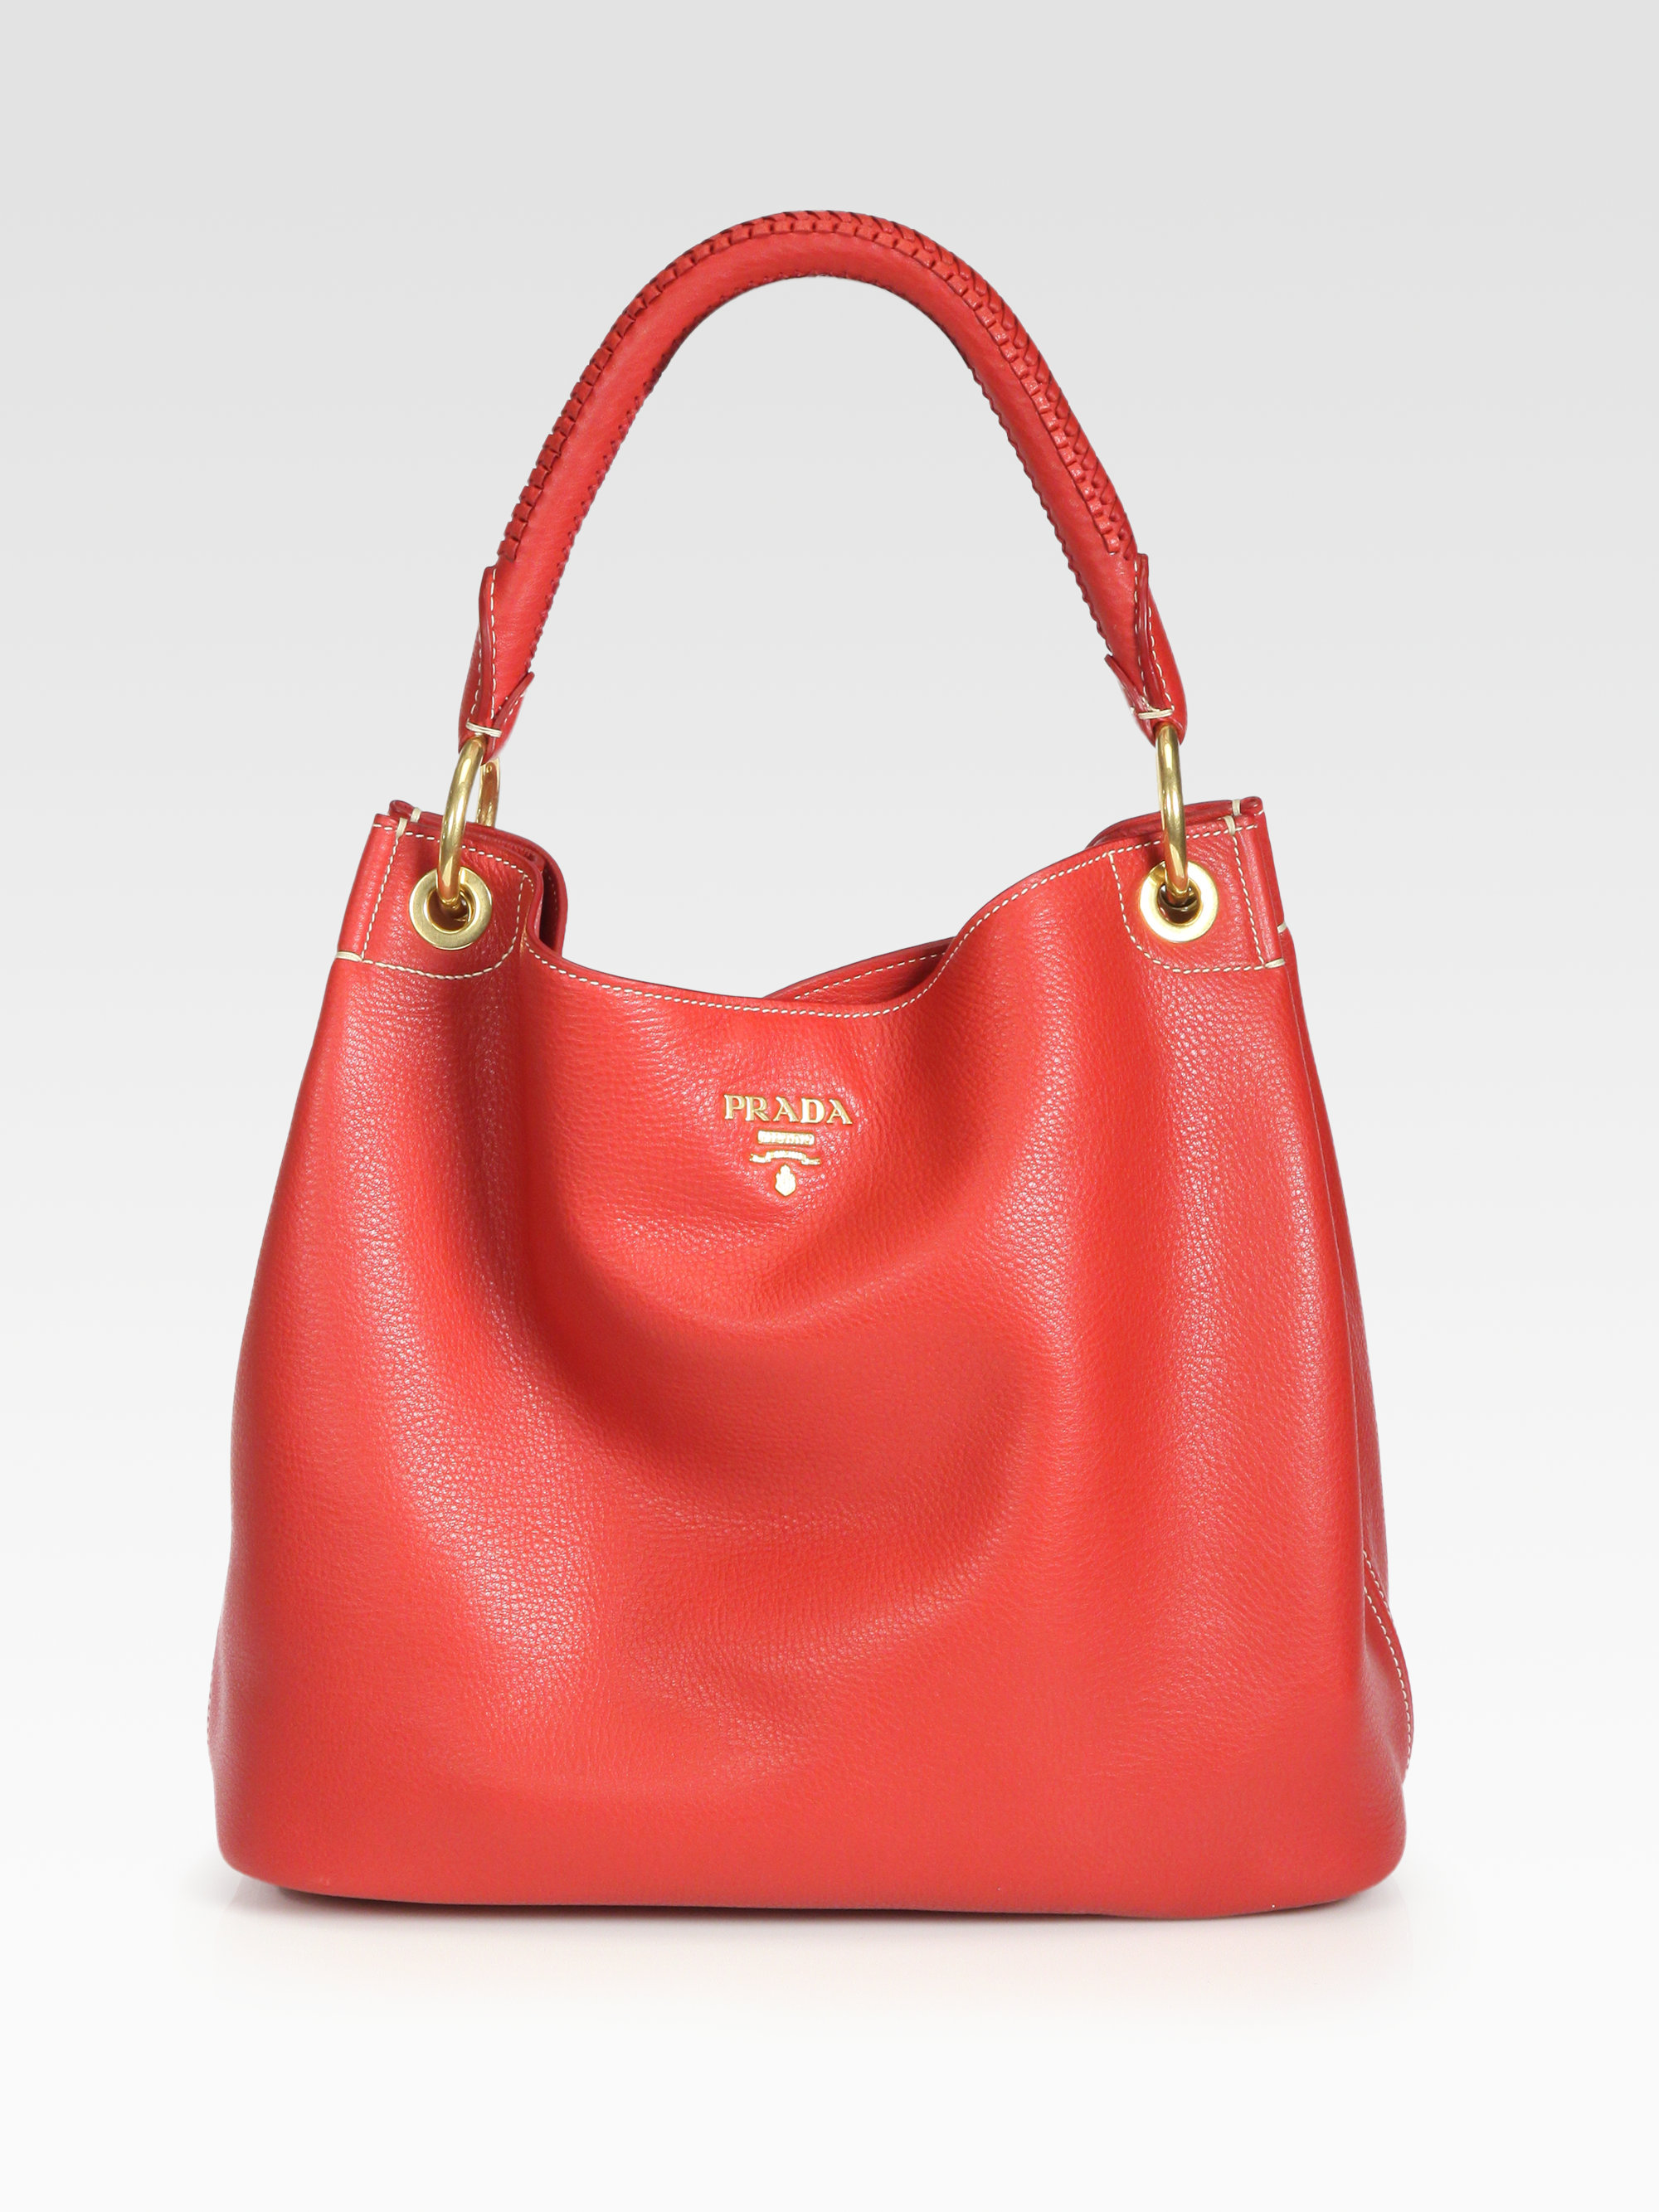 aeea506d5178 Lyst - Prada Vitello Daino Hobo Bag in Red